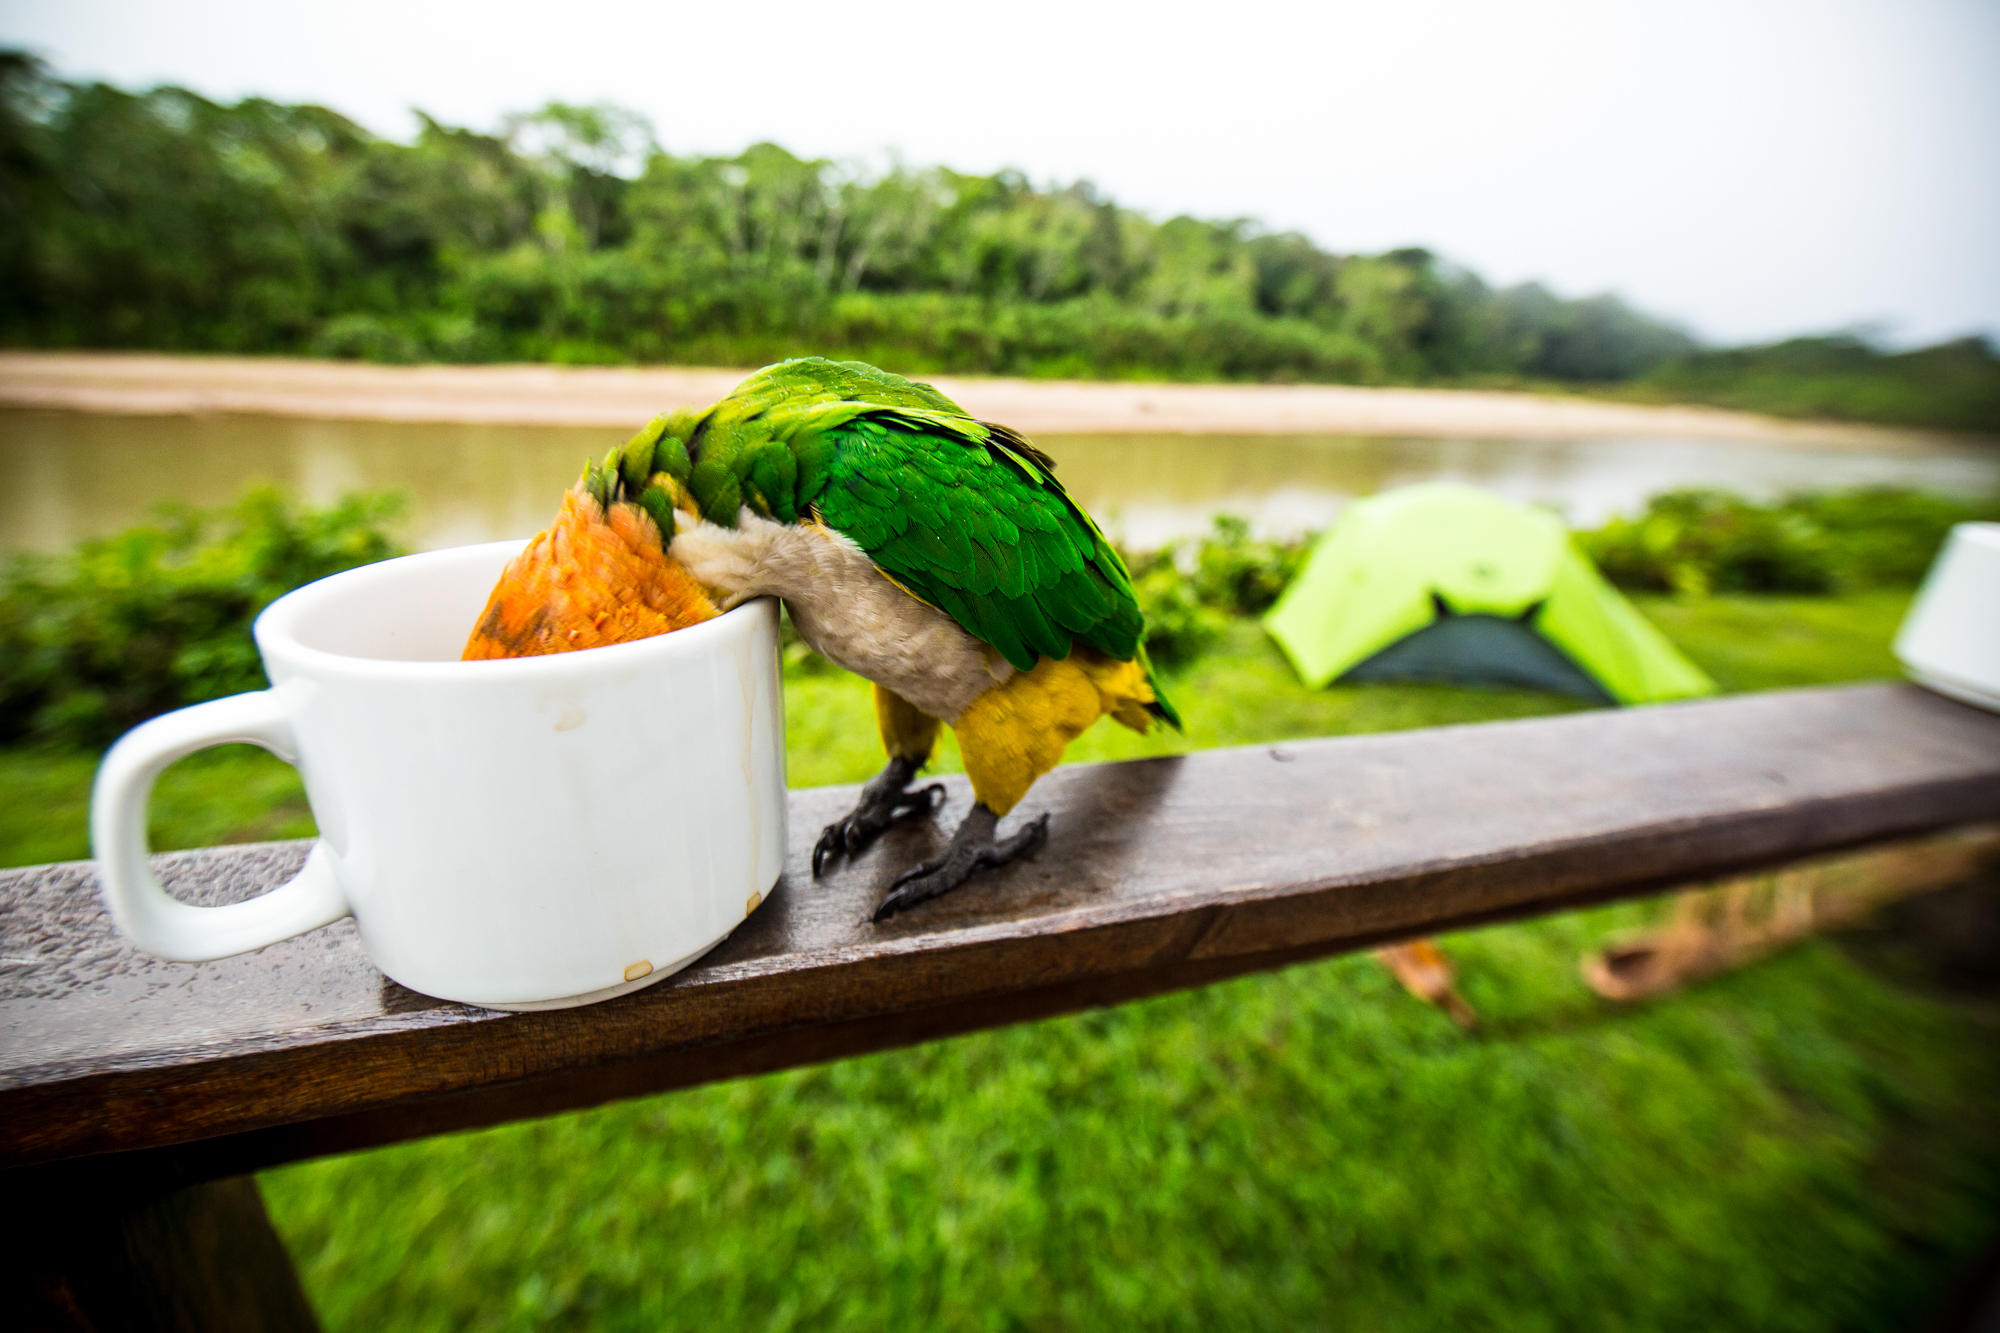 A white bellied parrot named Profundo, takes a sip of strong Bolivian coffee.